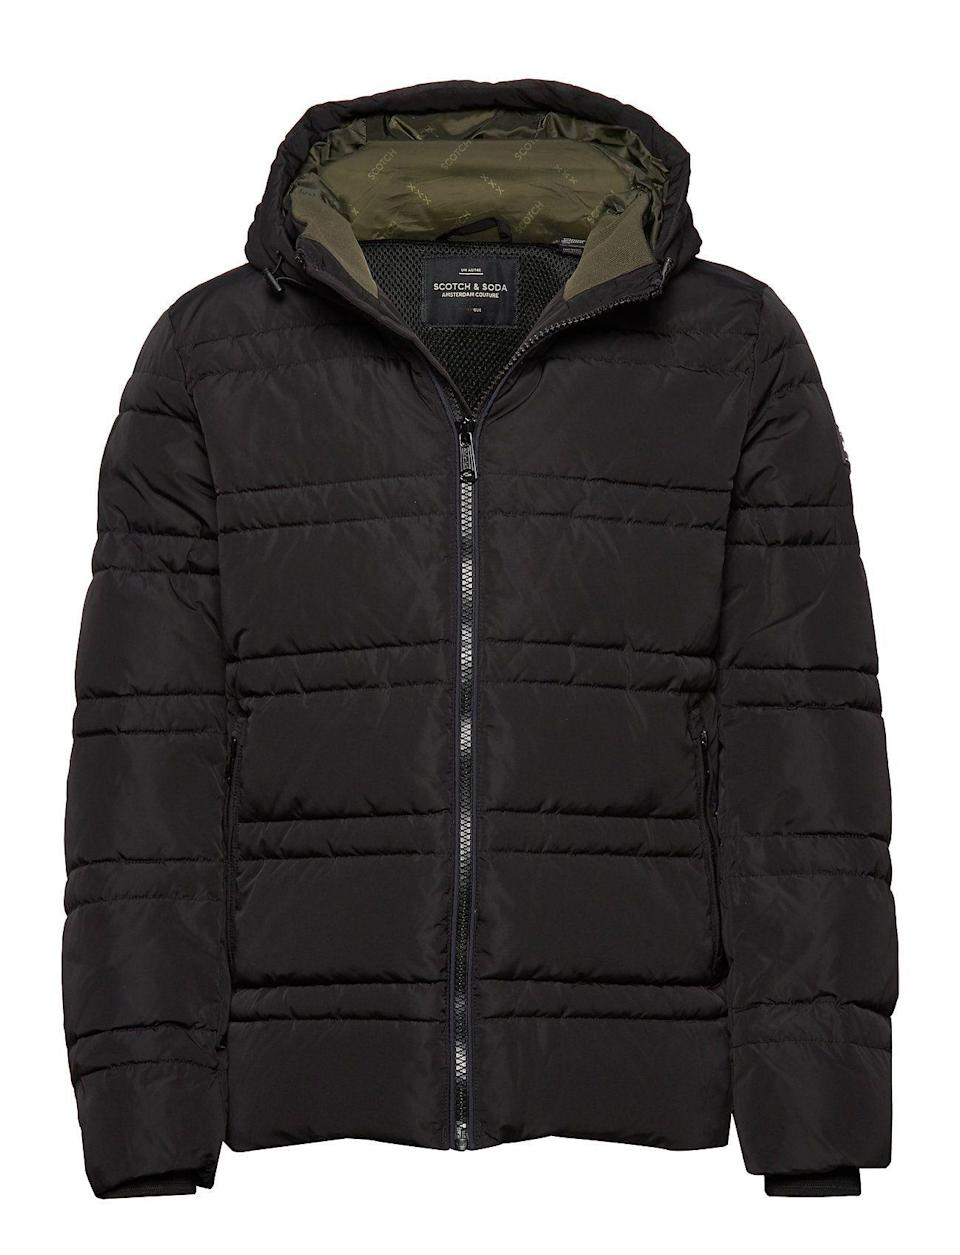 """<p><strong>Scotch & Soda</strong></p><p>amazon.com</p><p><strong>$139.99</strong></p><p><a href=""""https://www.amazon.com/dp/B07MSQ5KP2?tag=syn-yahoo-20&ascsubtag=%5Bartid%7C10051.g.13053688%5Bsrc%7Cyahoo-us"""" rel=""""nofollow noopener"""" target=""""_blank"""" data-ylk=""""slk:Shop Now"""" class=""""link rapid-noclick-resp"""">Shop Now</a></p><p>This jacket's detailed sleeves and tailored fit render it a sharp and timeless winter staple.</p>"""